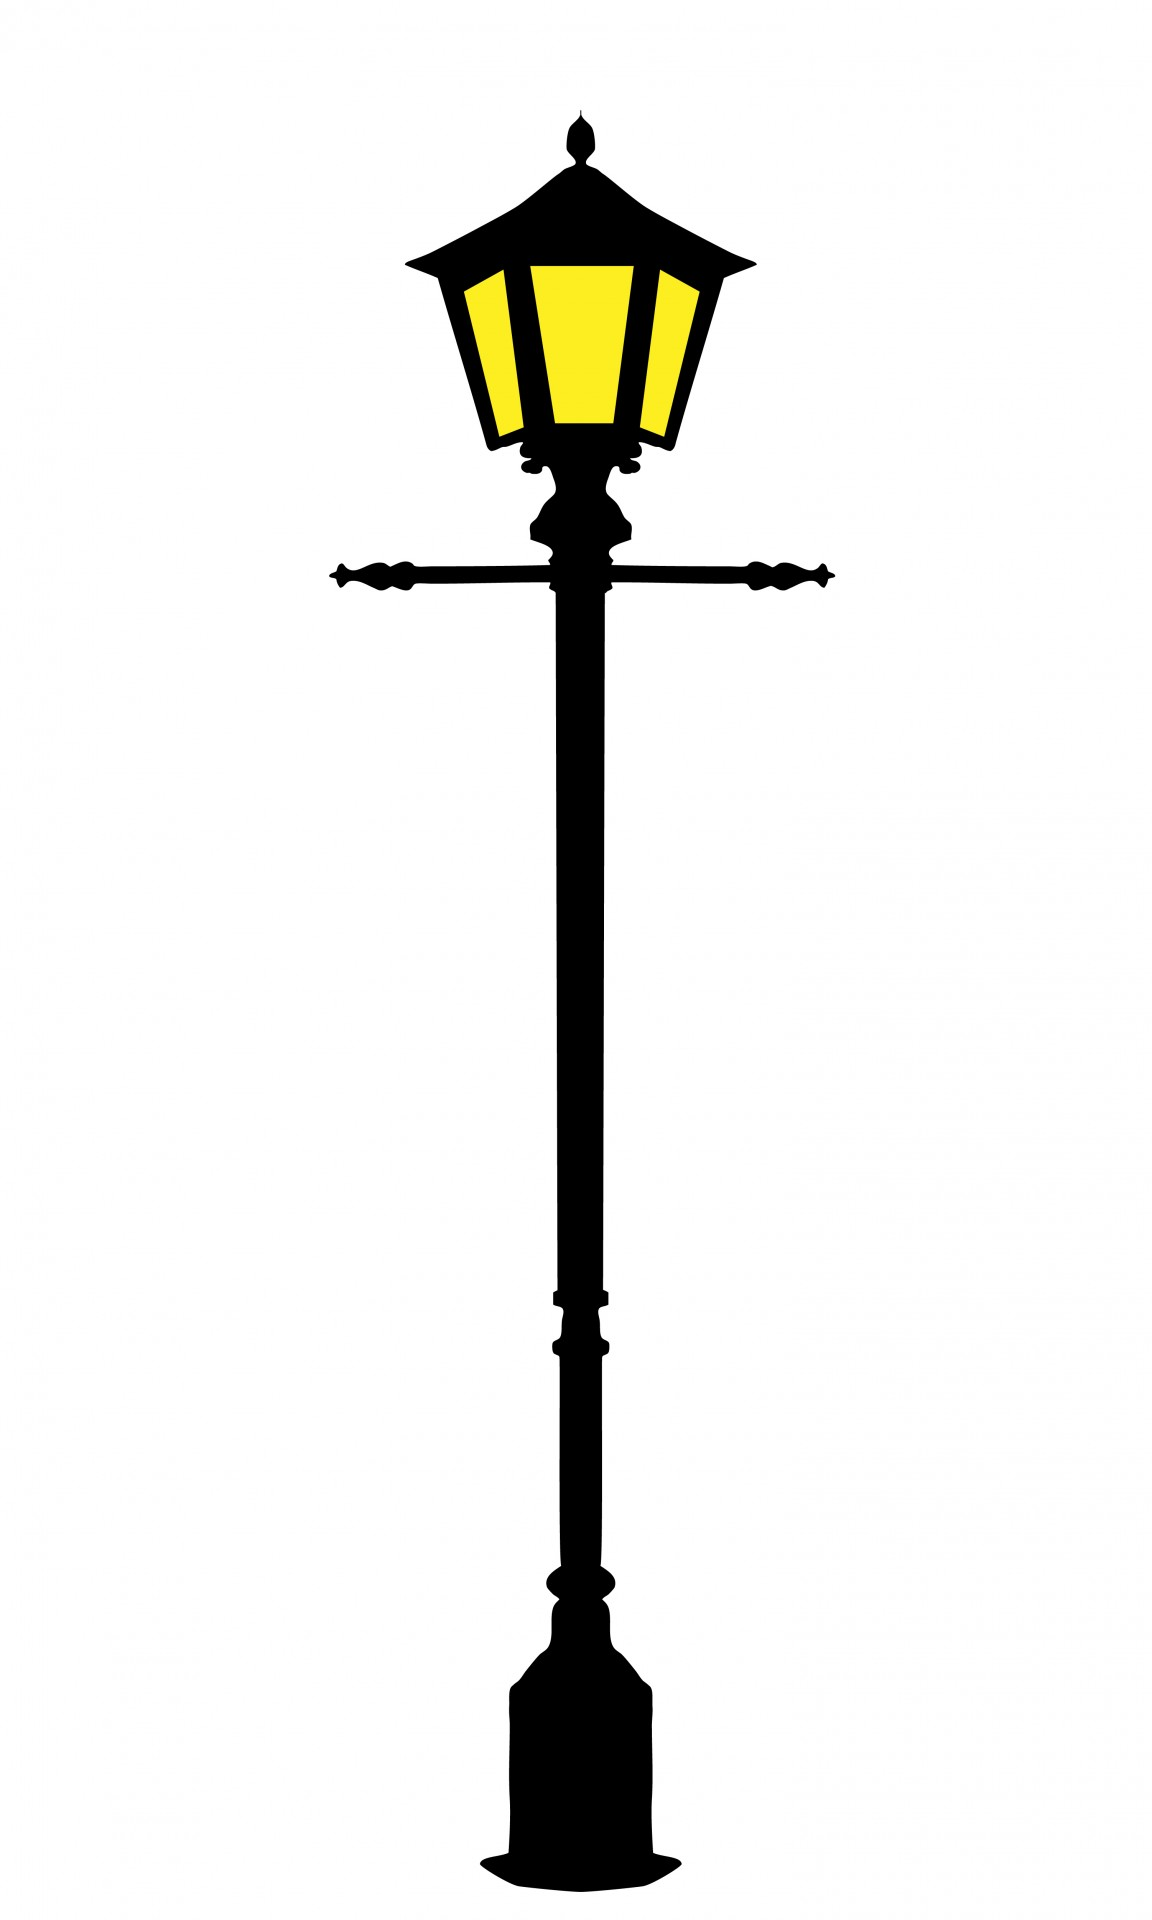 Straßenlaterne Icon Vintage Street Lighting Clipart Free Stock Photo Public